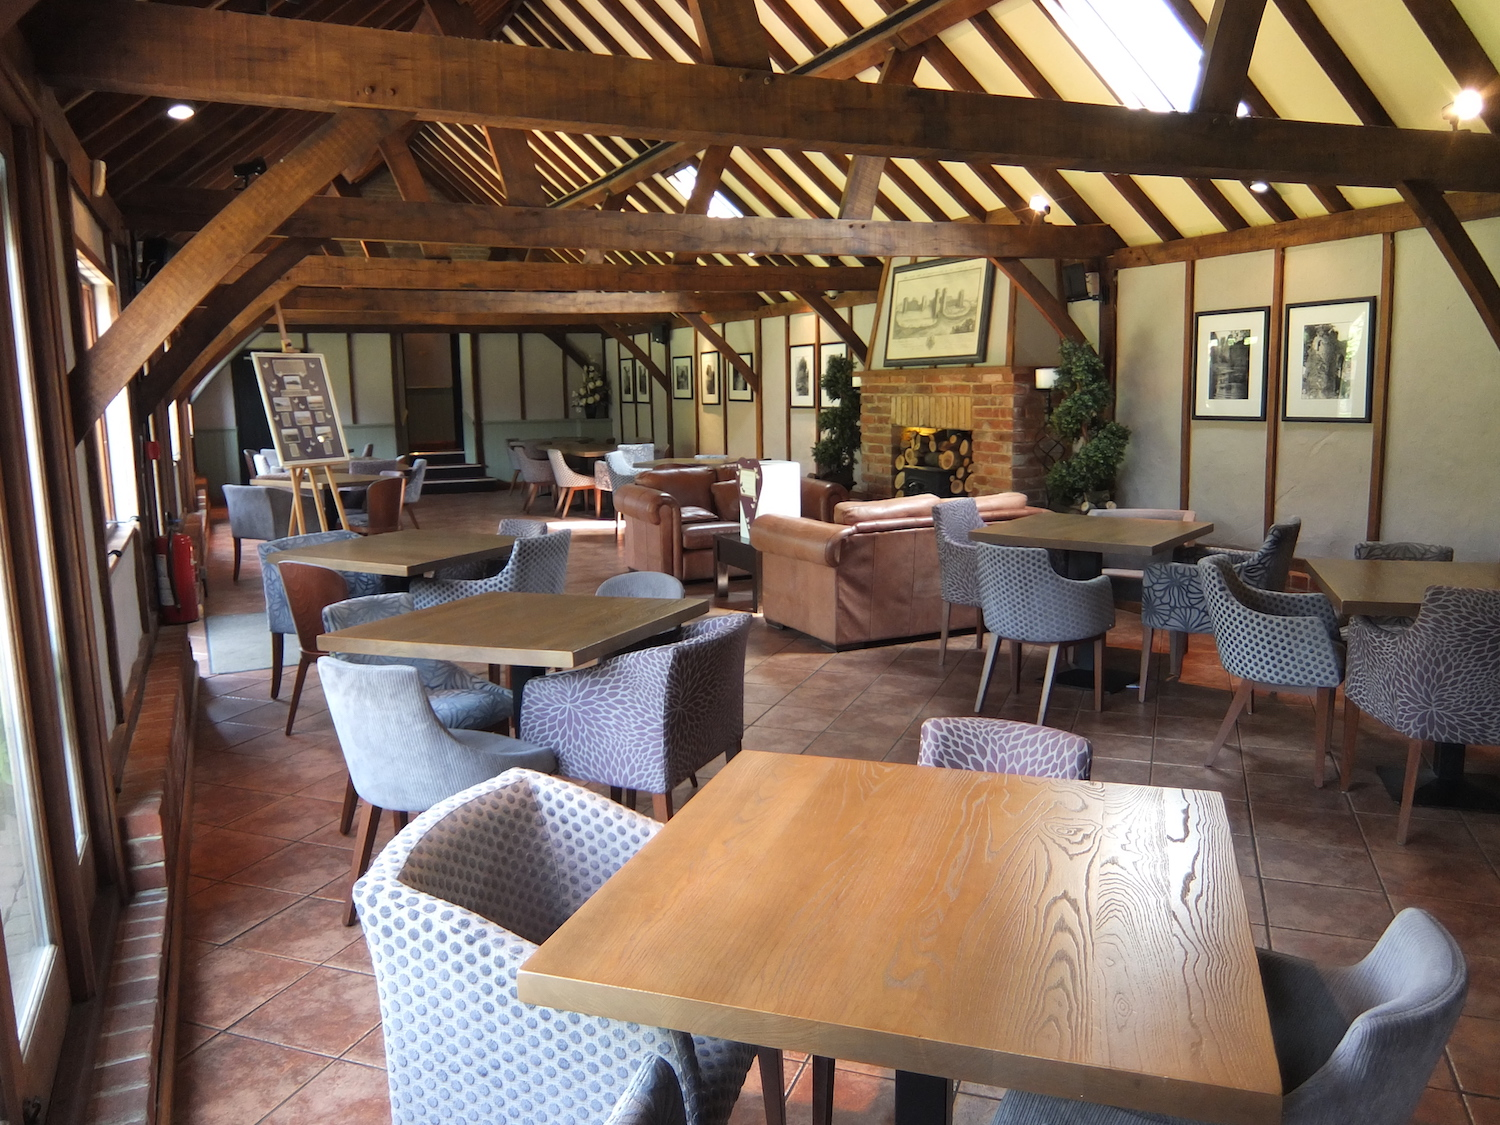 Inside of Heritage Barn used for guest arrival & breakfast service